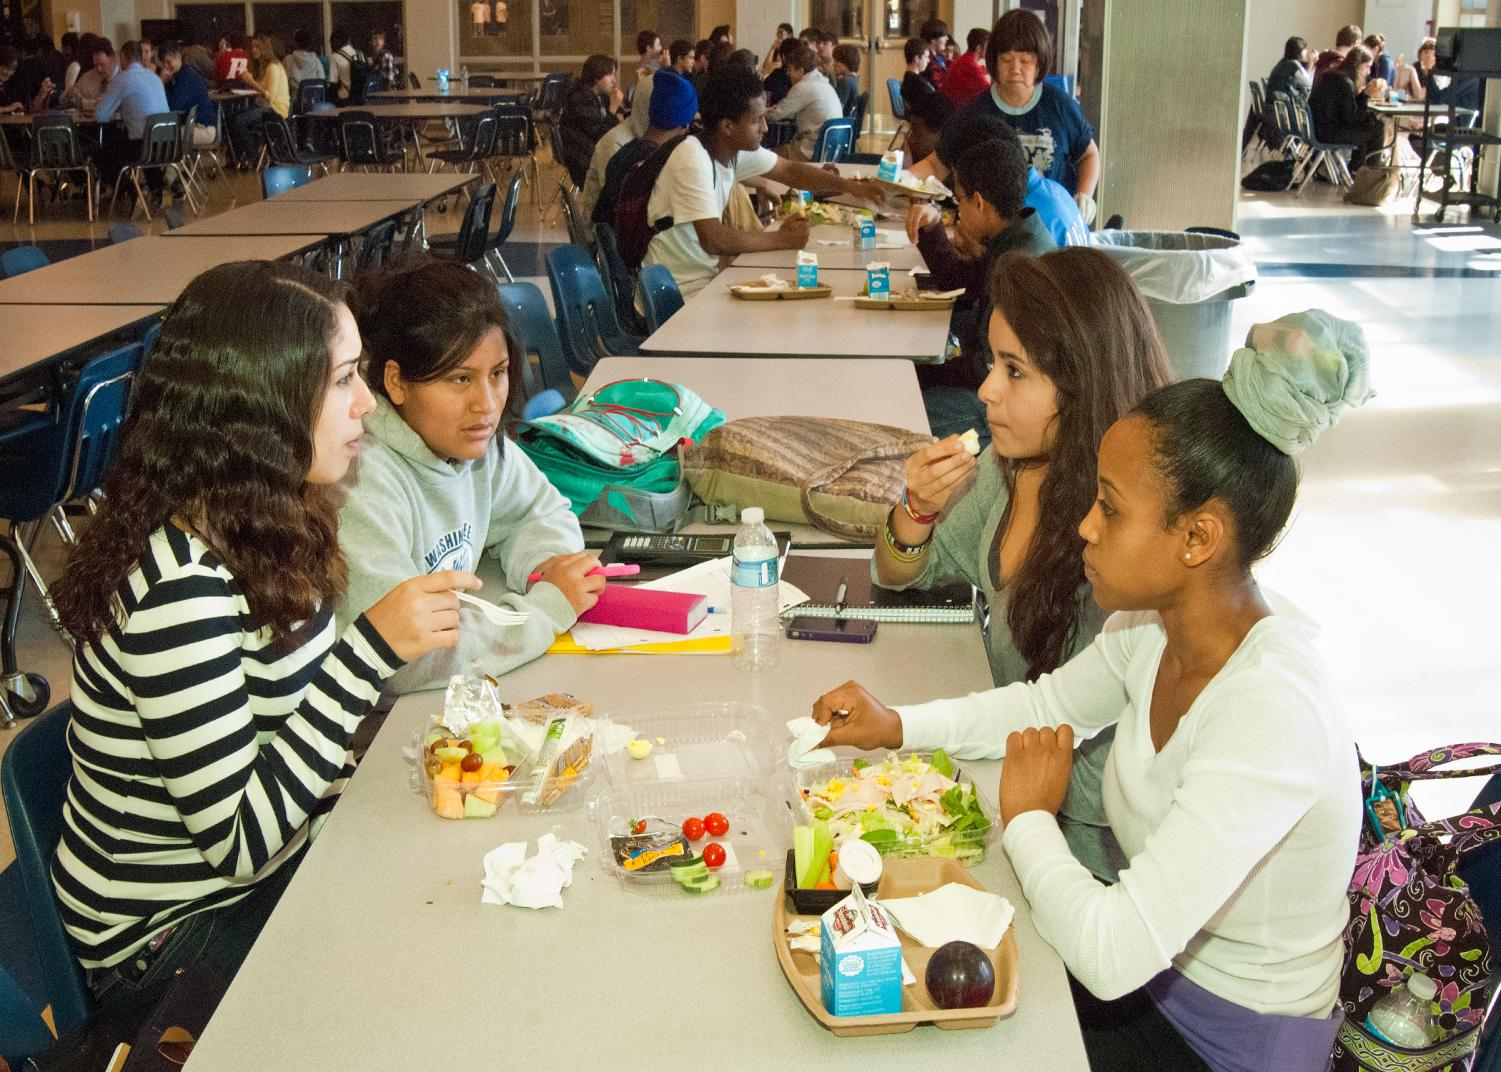 Students may opt for the limited healthier menu options offered by MCPS, such as salads.